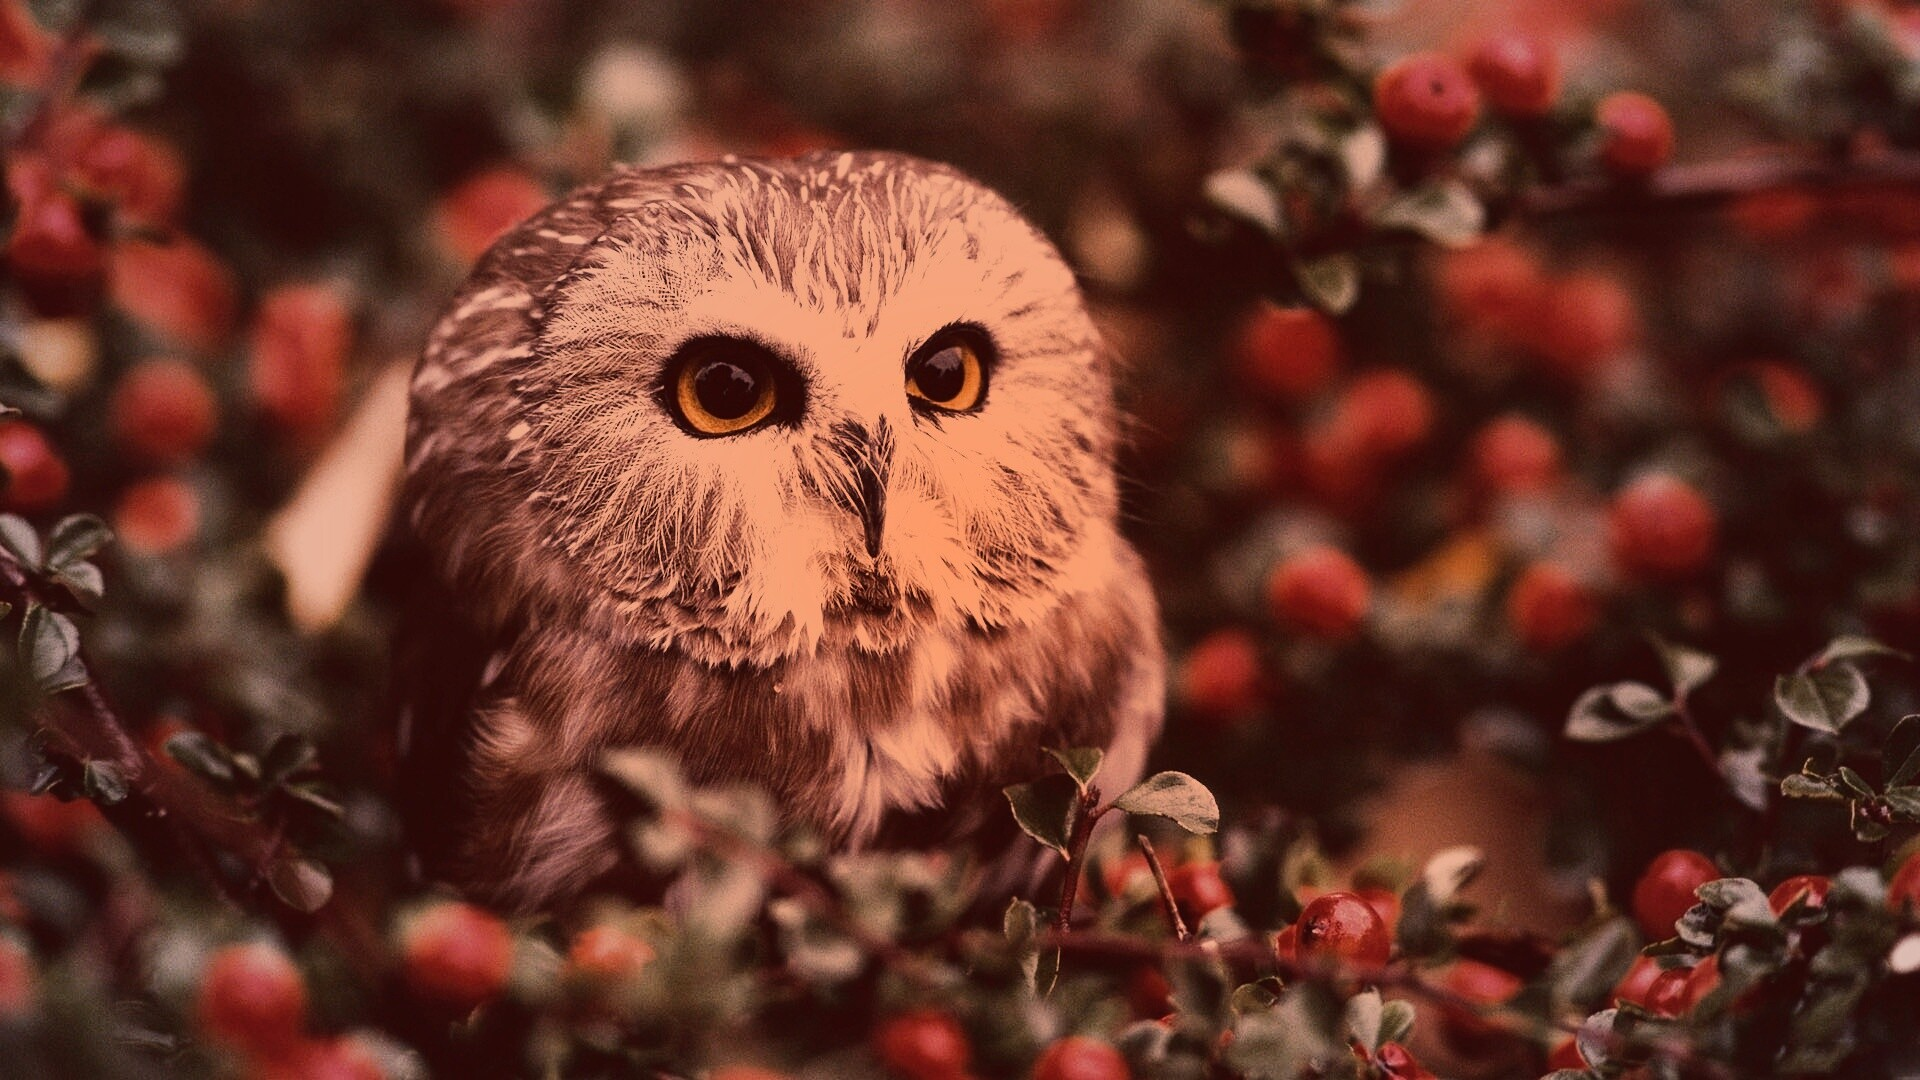 Owl species with pictures Most Autistic People Have Normal Brain Anatomy - Neuroskeptic